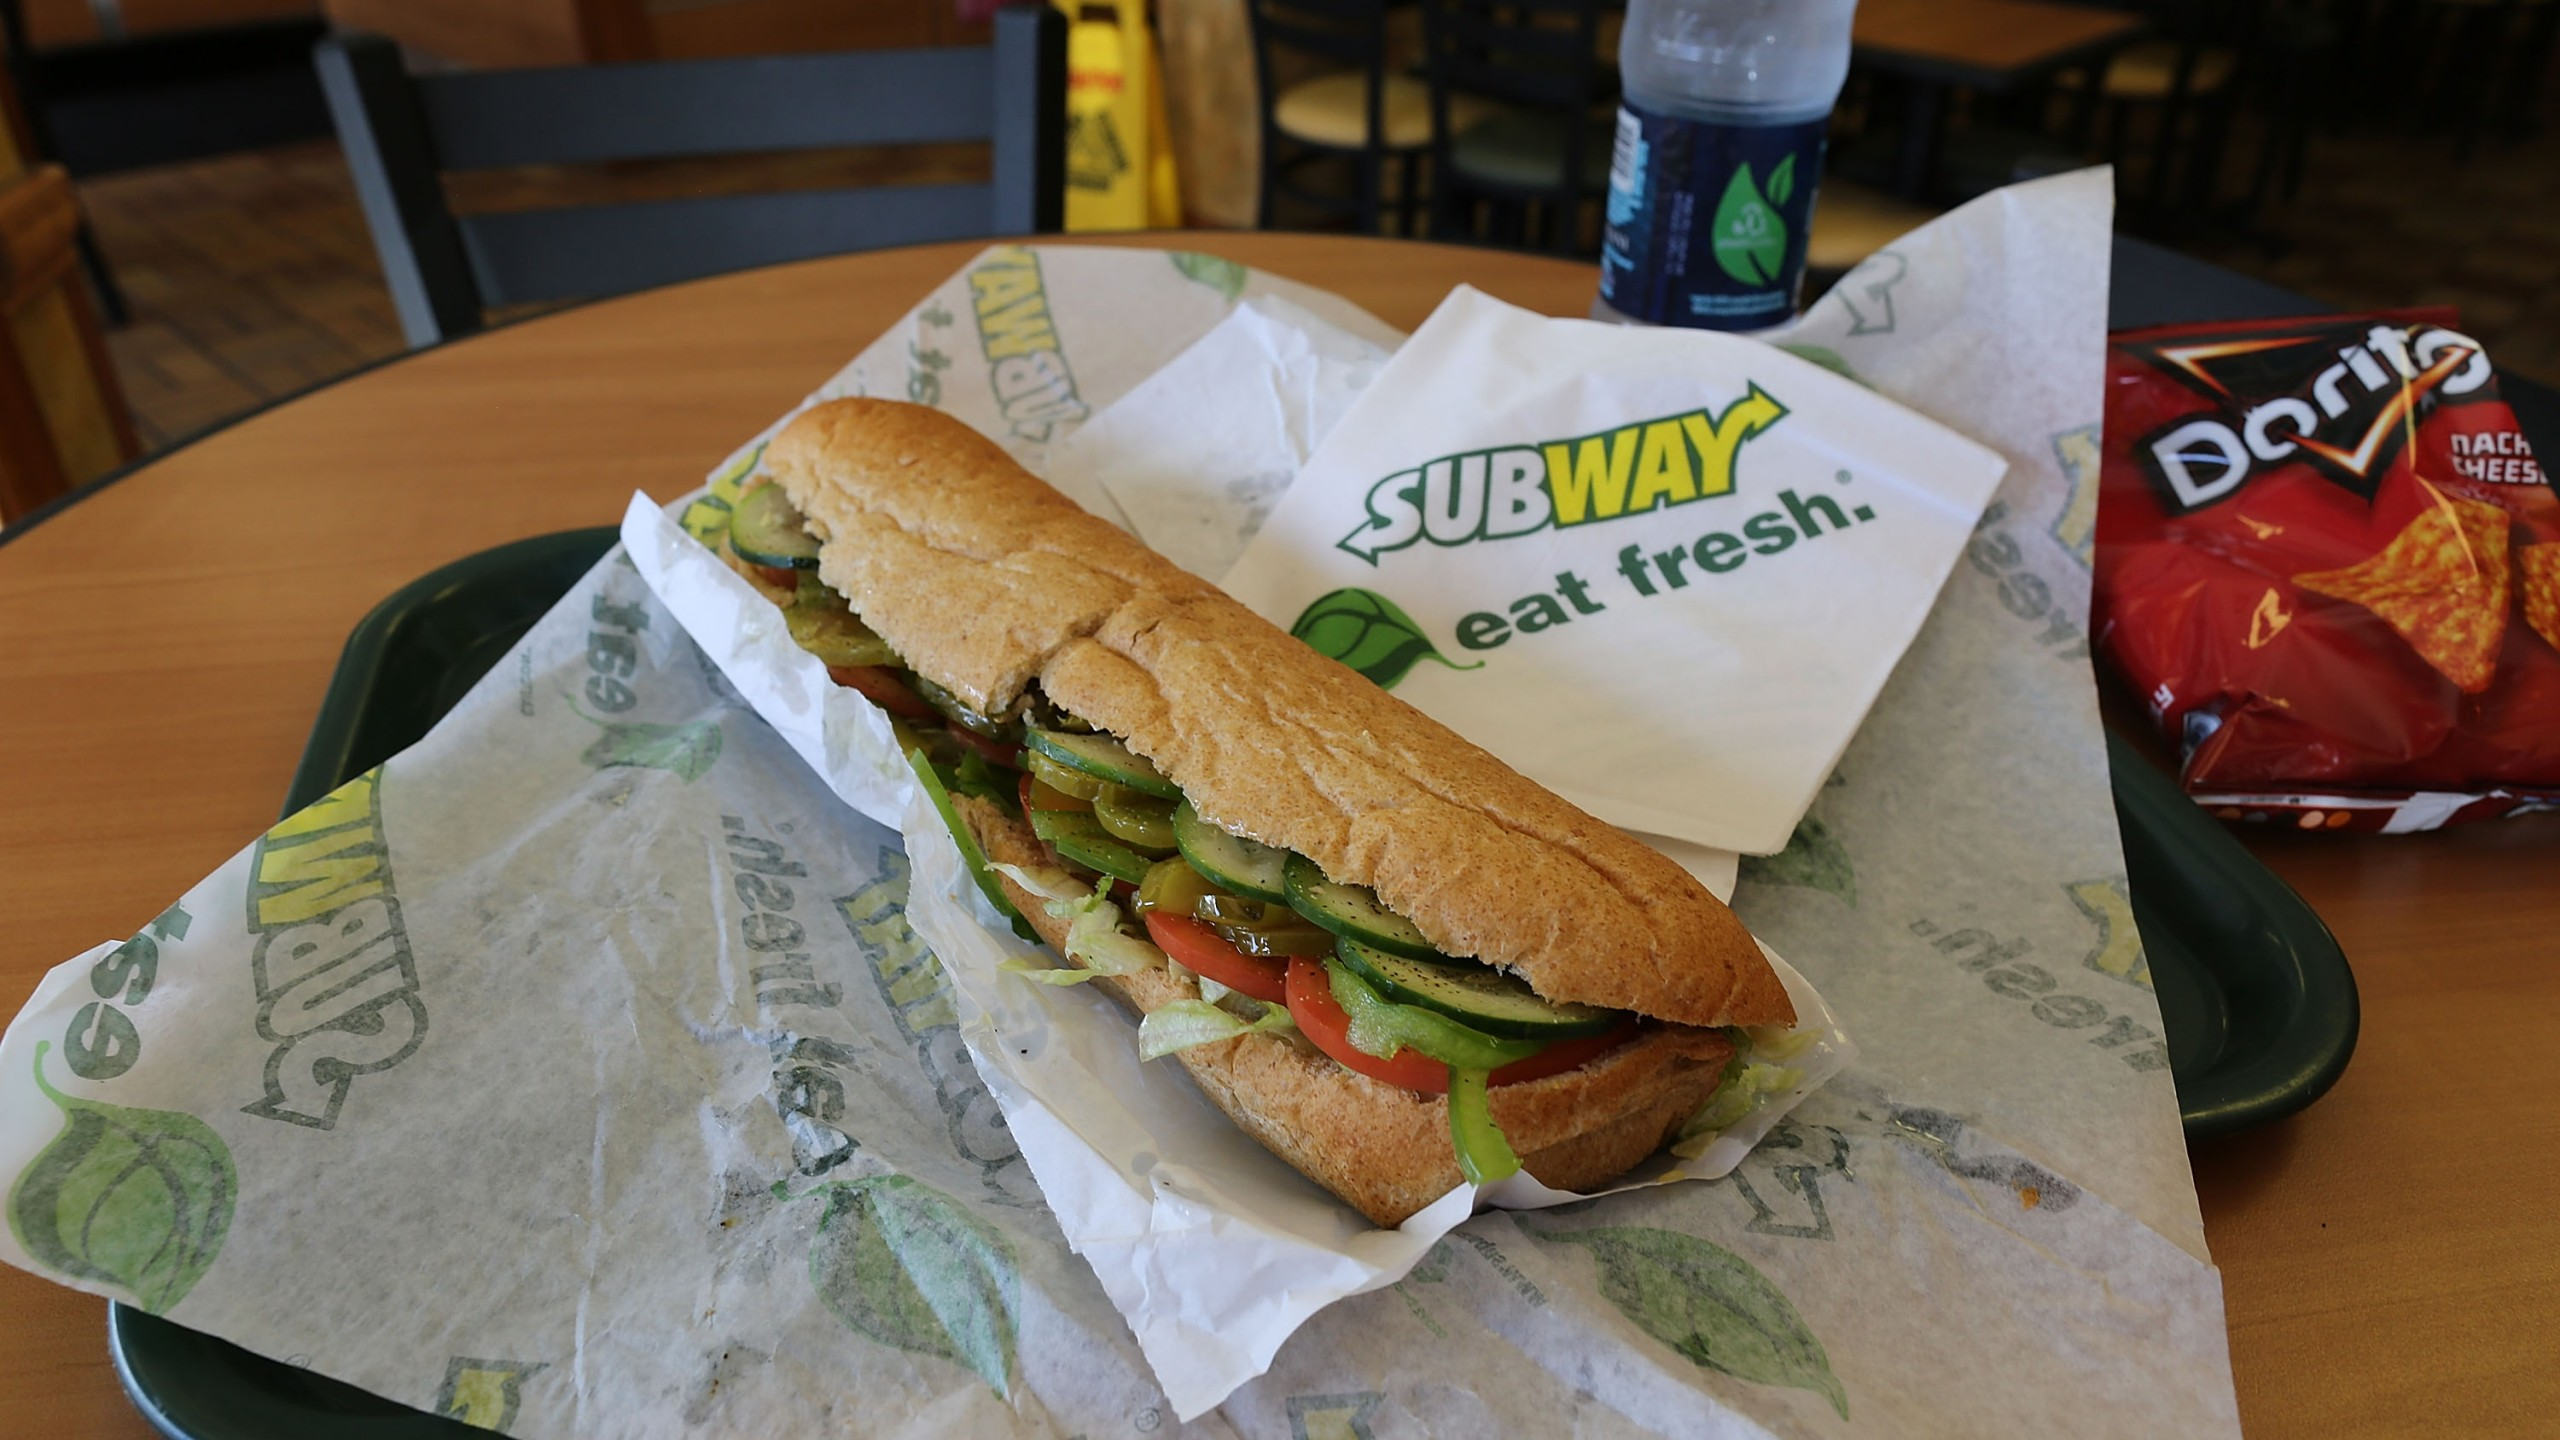 A Subway sandwich is seen in a restaurant. (Credit: Joe Raedle/Getty Images)